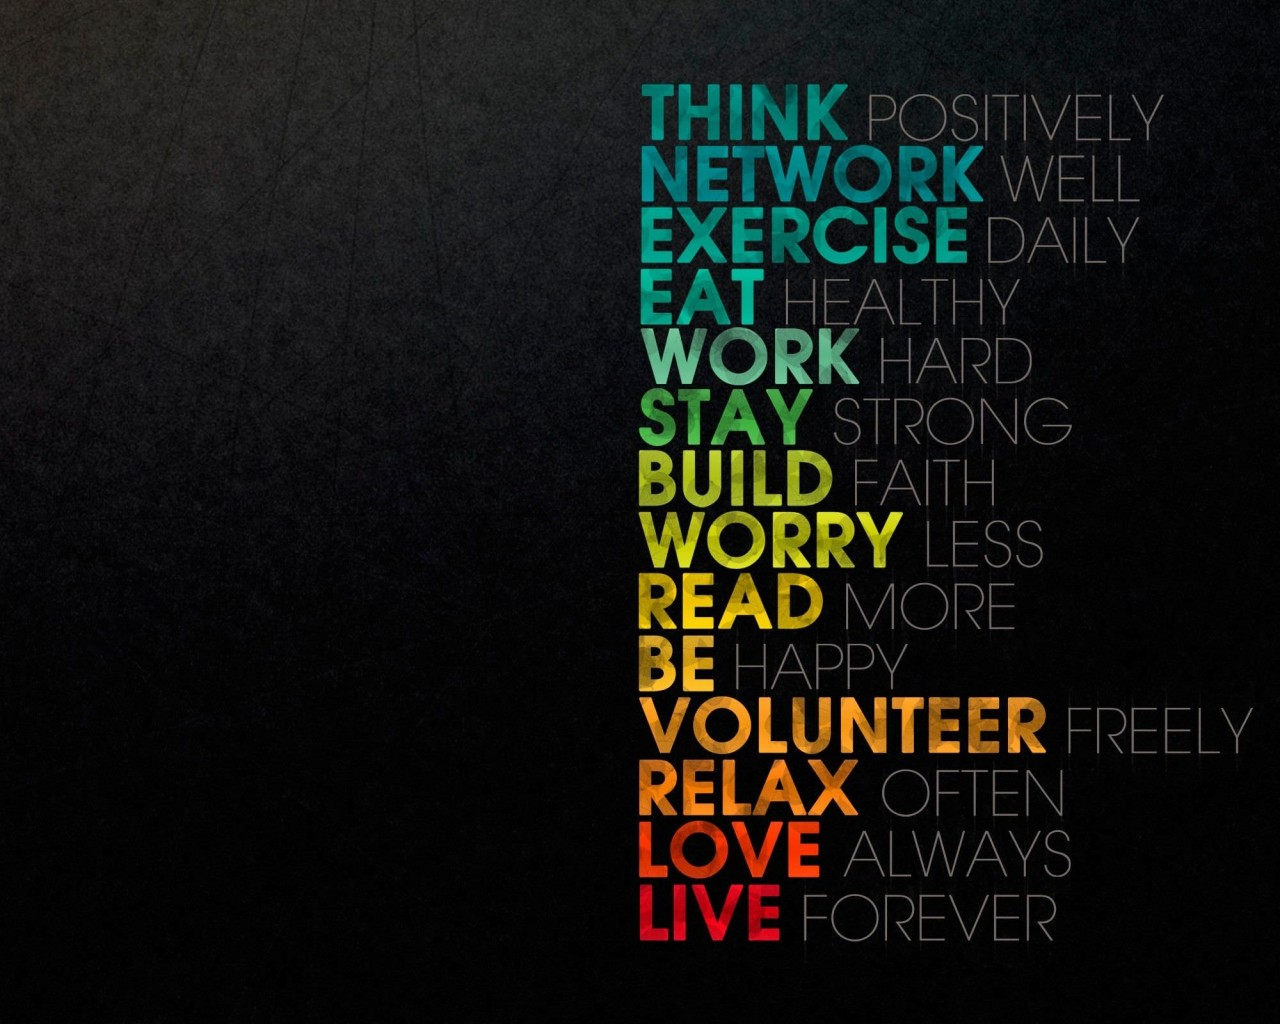 Think Positively Wallpaper for Desktop 1280x1024